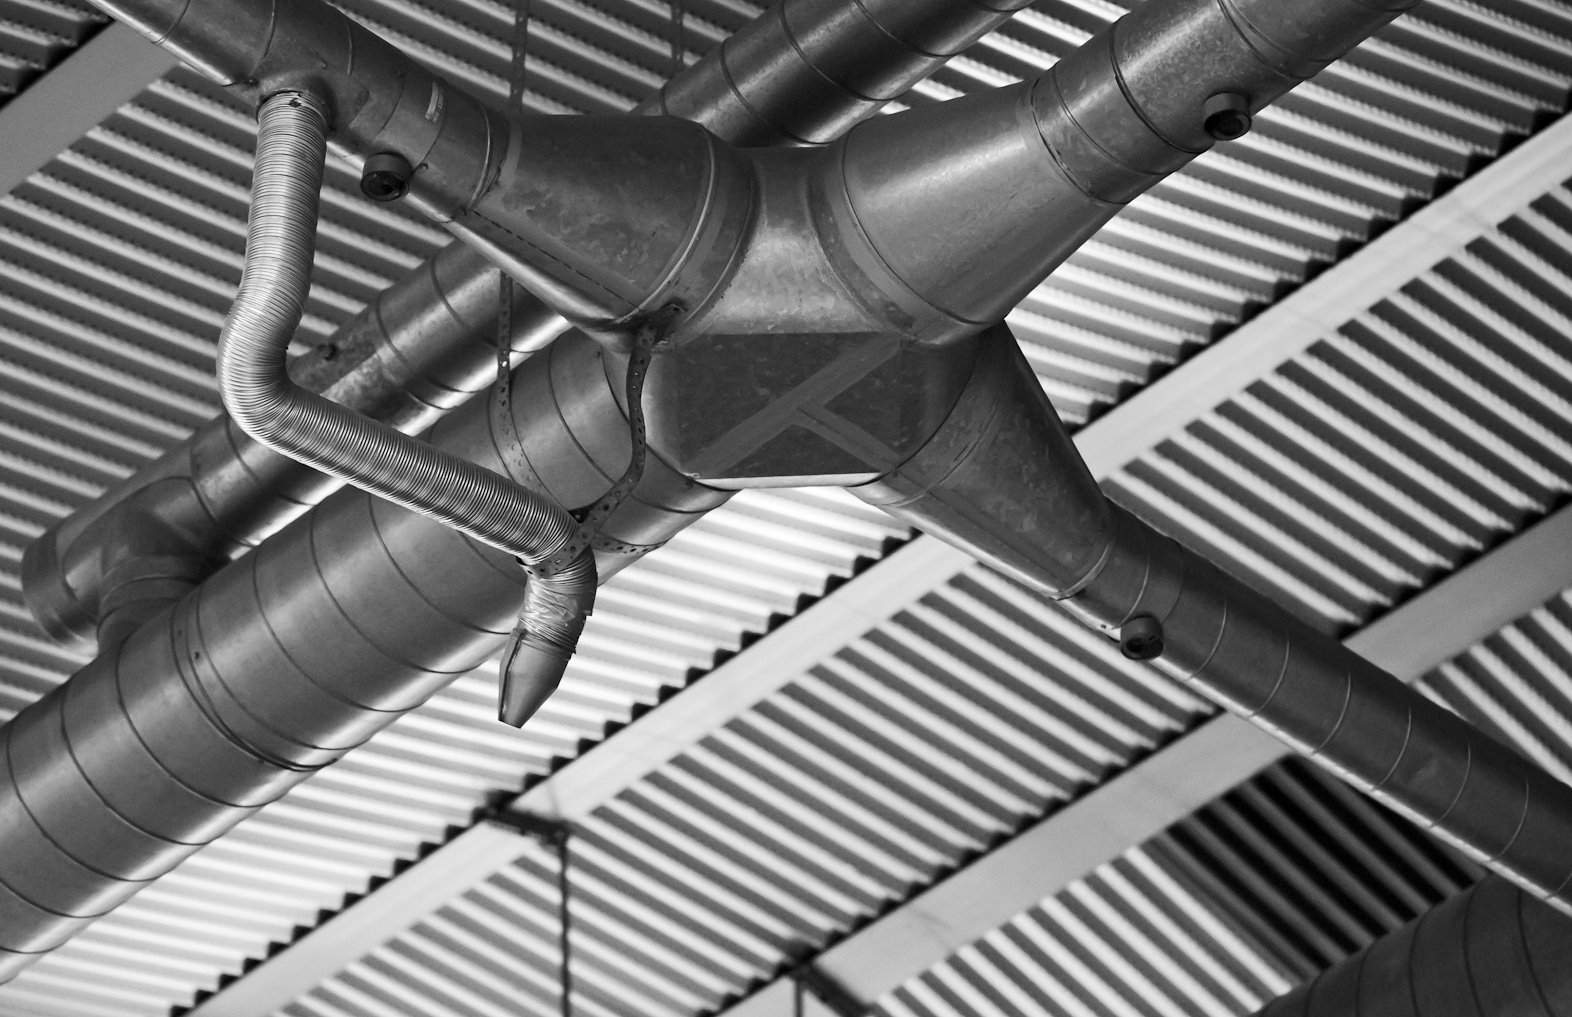 continuing the photo series of ventilation systems, photo 189141, 2012-03-03